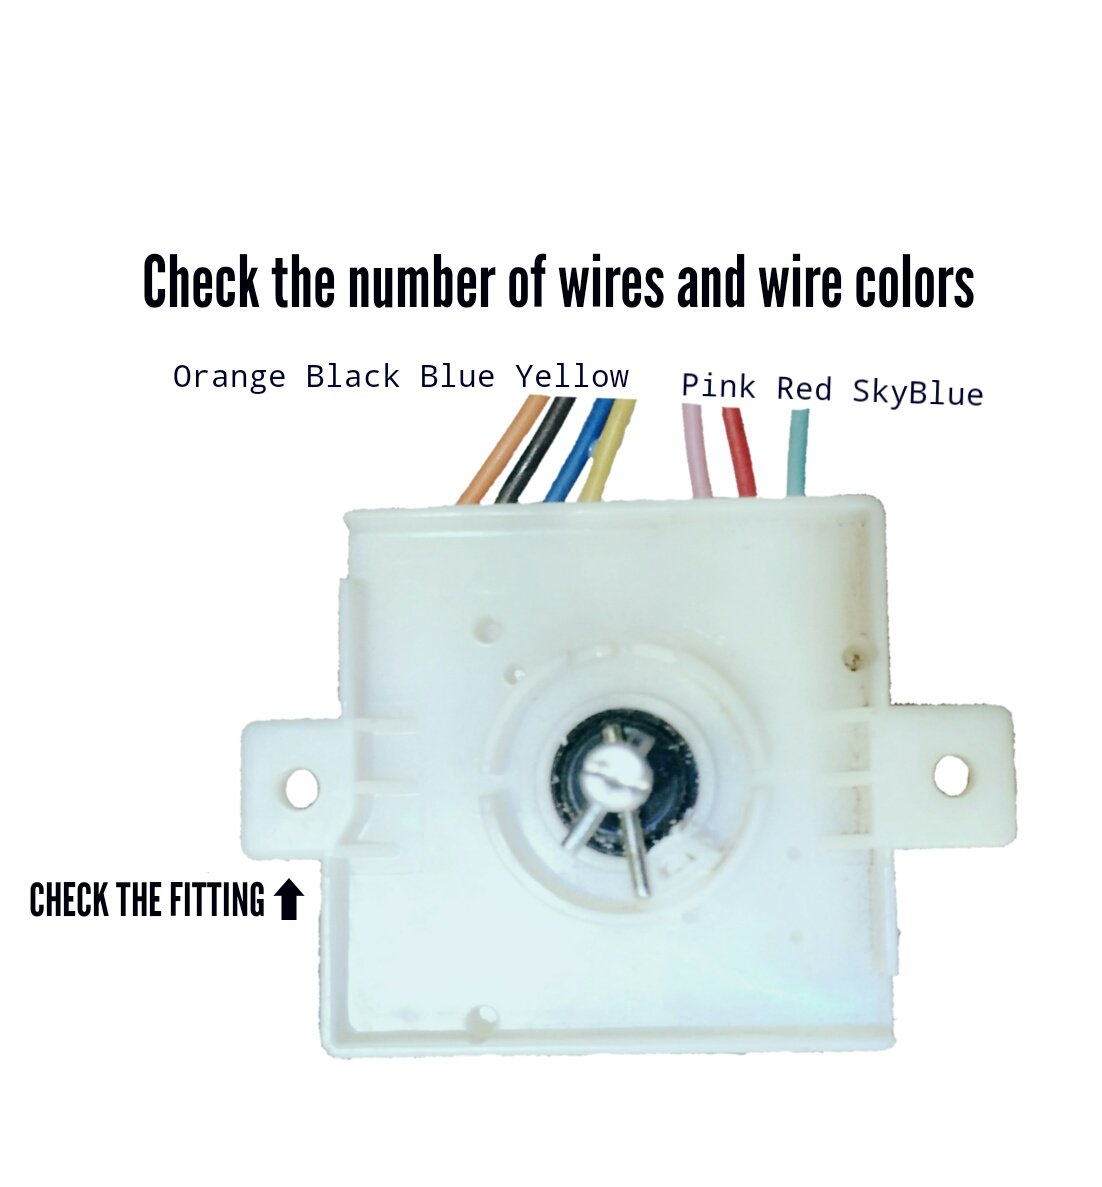 [SCHEMATICS_4FR]  doctorspare Washing Machine Timer, 7 Wire, Compatible with Whirlpool (Match  & Buy): Amazon.in: Home & Kitchen | Wiring Diagram Of Washing Machine Timer |  | Amazon.in